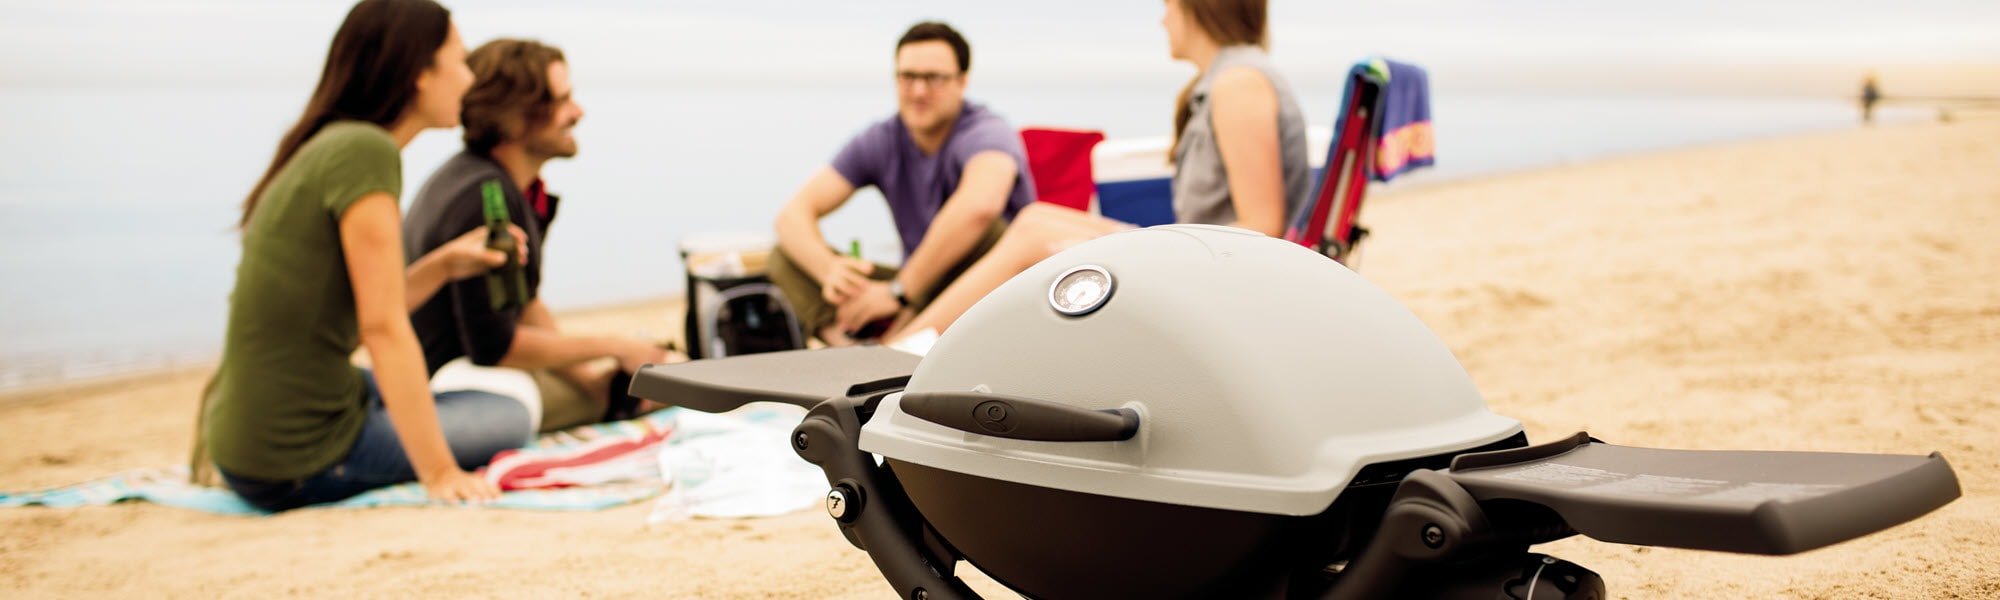 Weber Baby Q feature